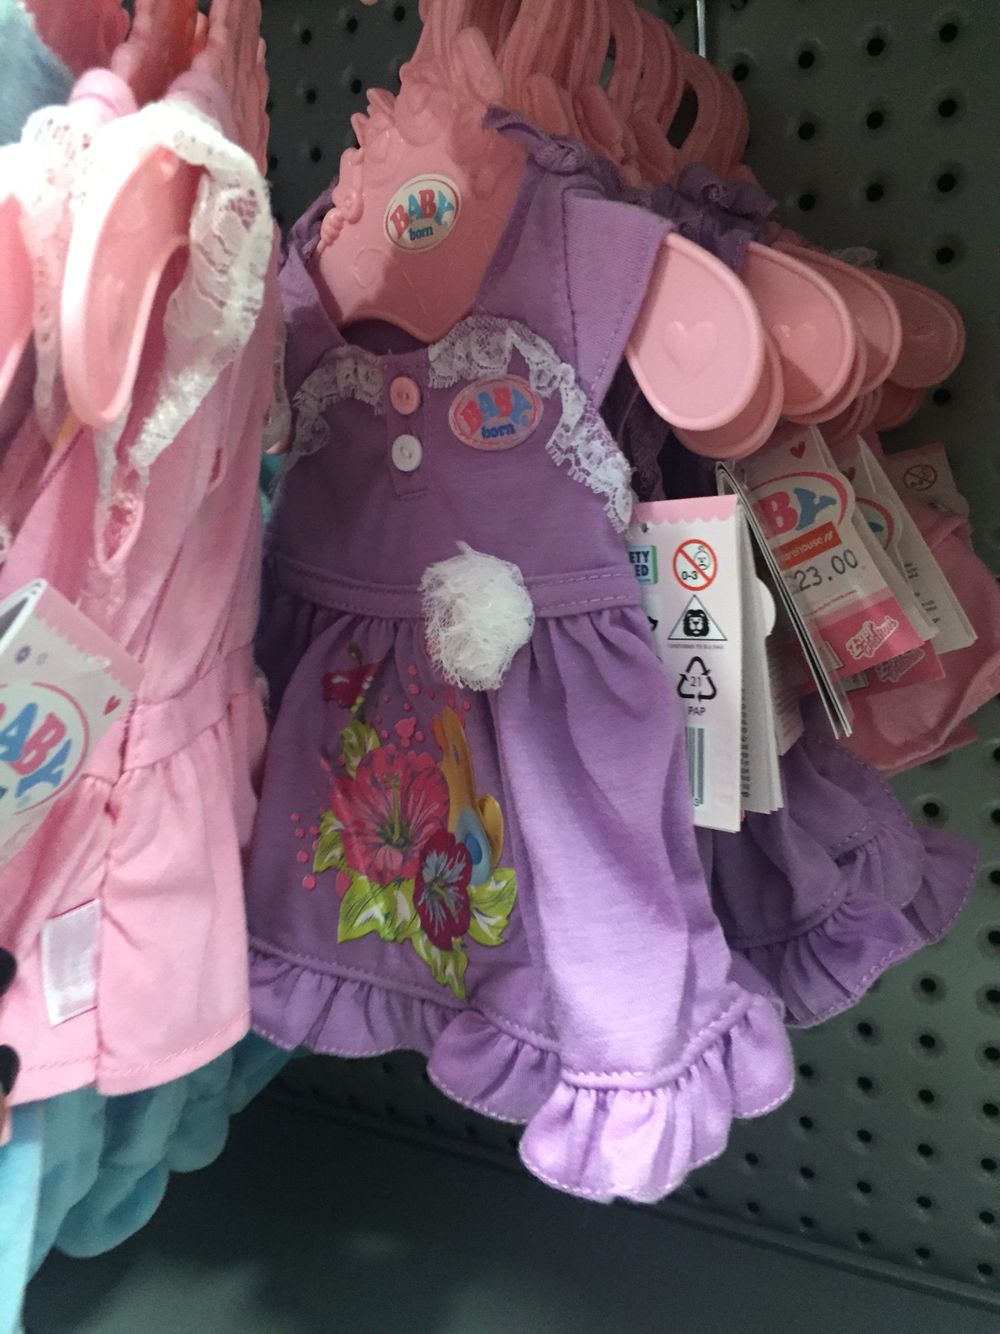 Baby alive clothes. Why aren't these in Australia? Come on